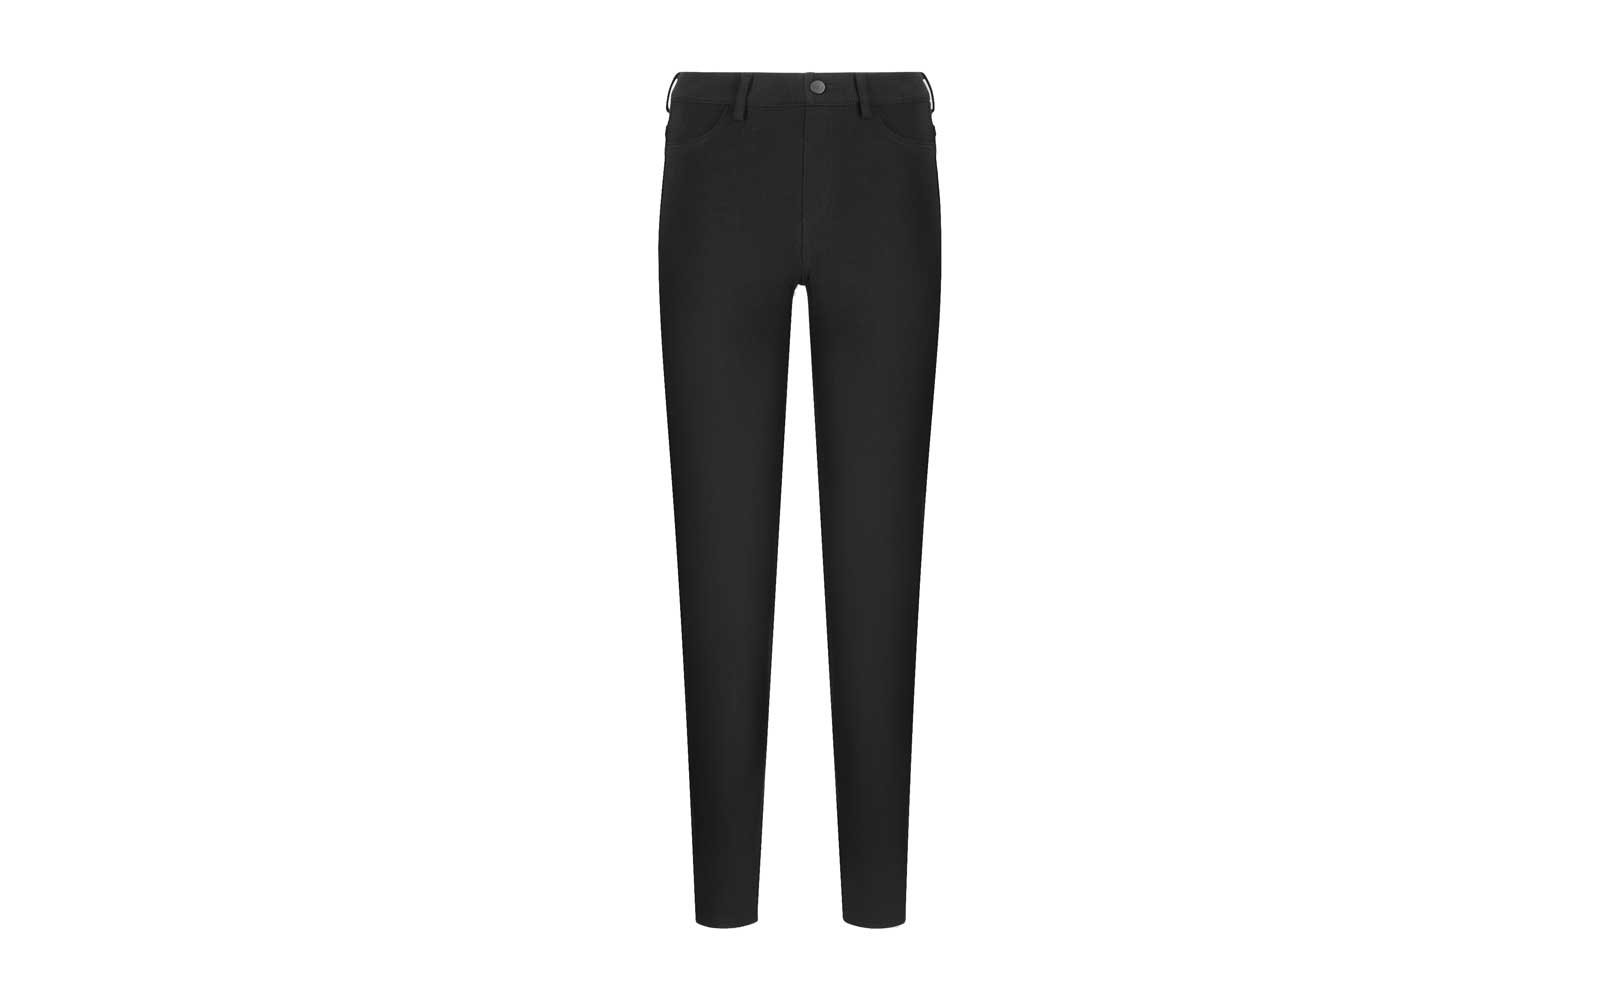 Uniqlo Women's Legging Pants